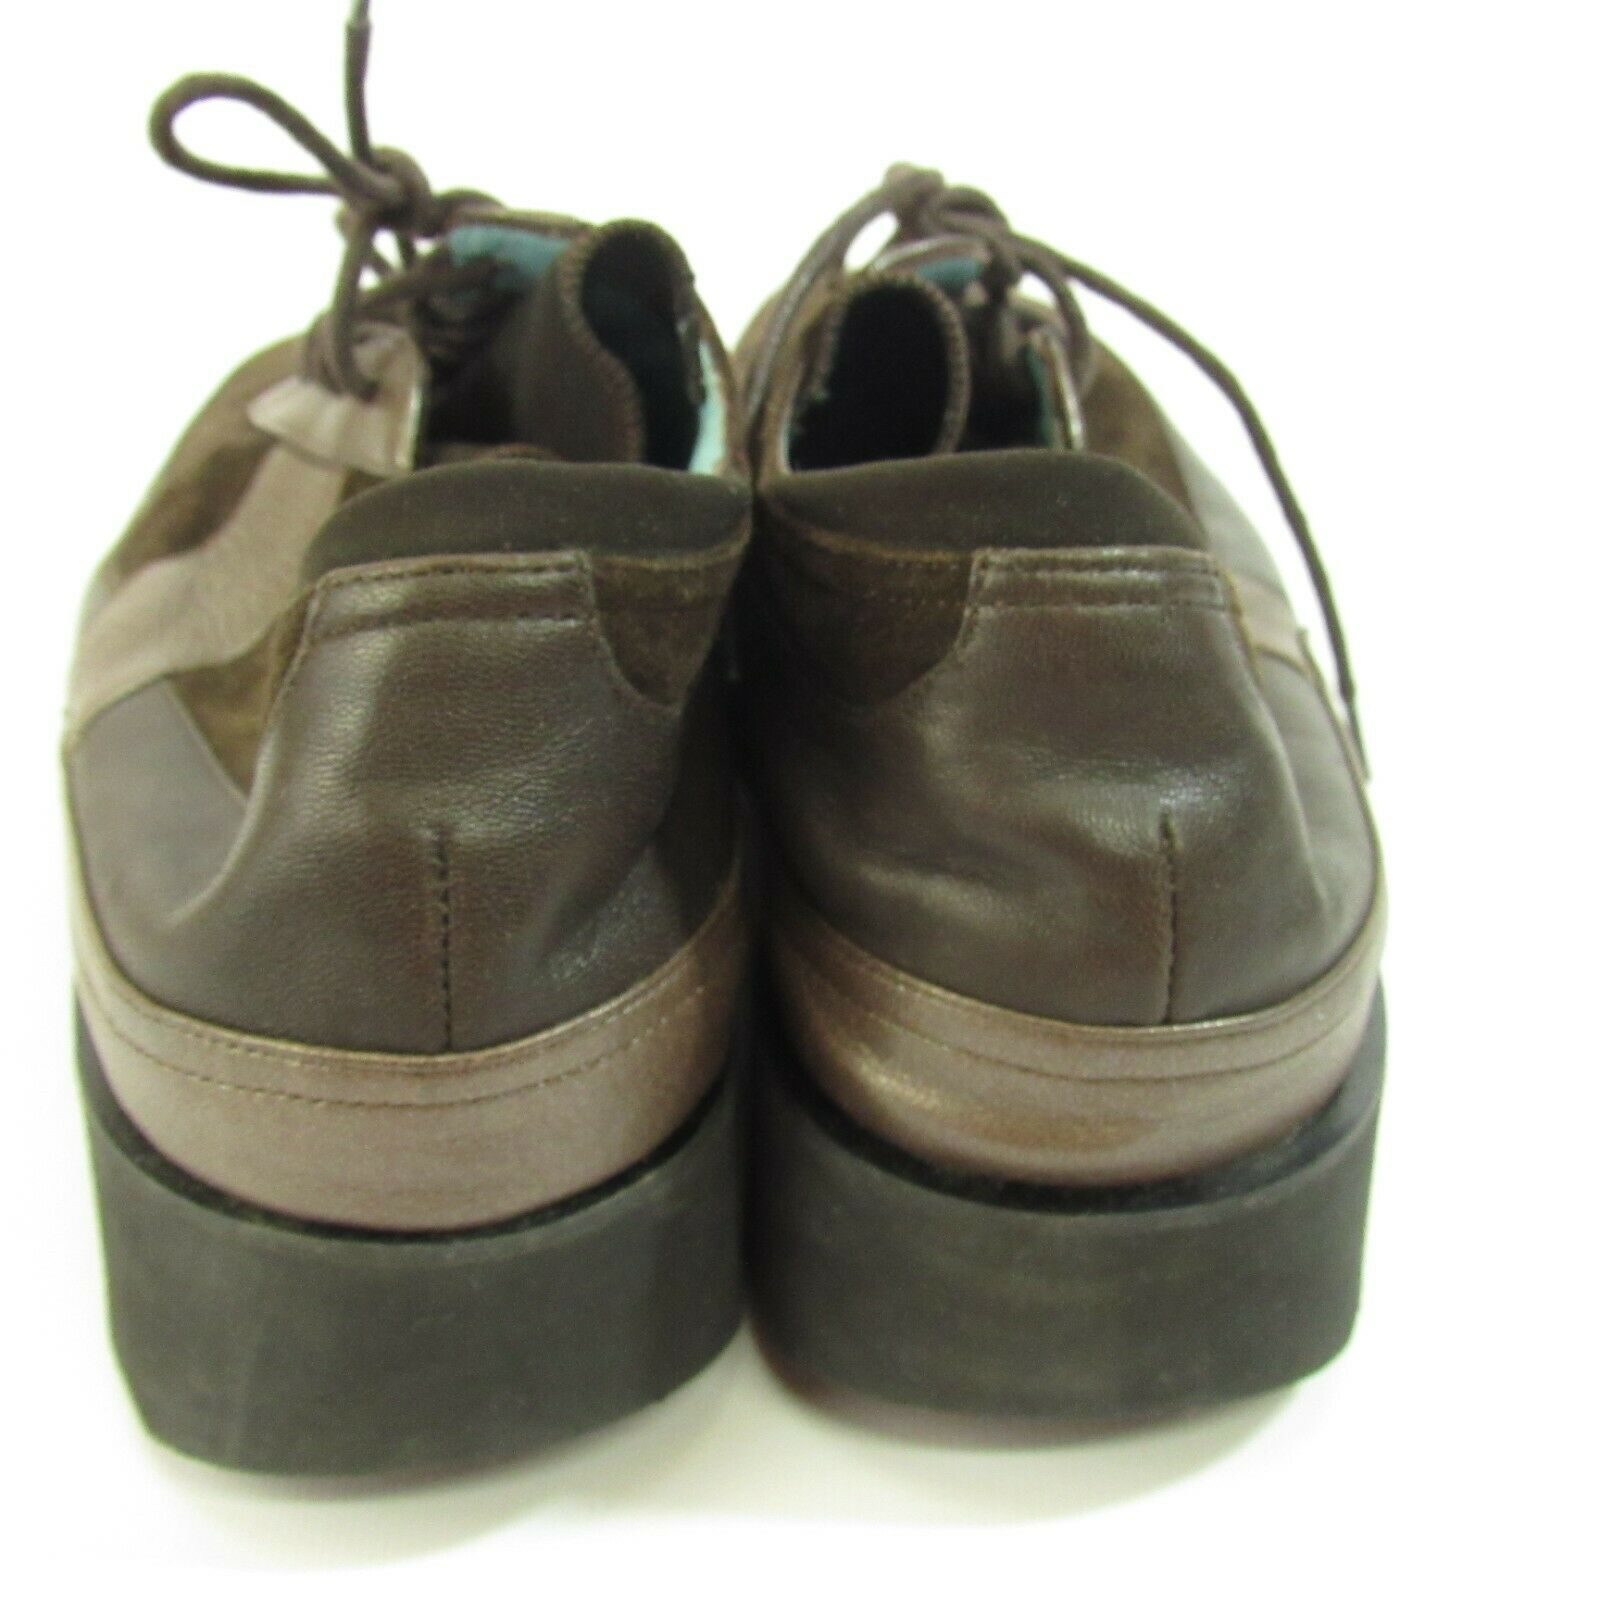 Thierry Rabotin Brown Walking Shoes Women's Size 6 Italian Made in Italy